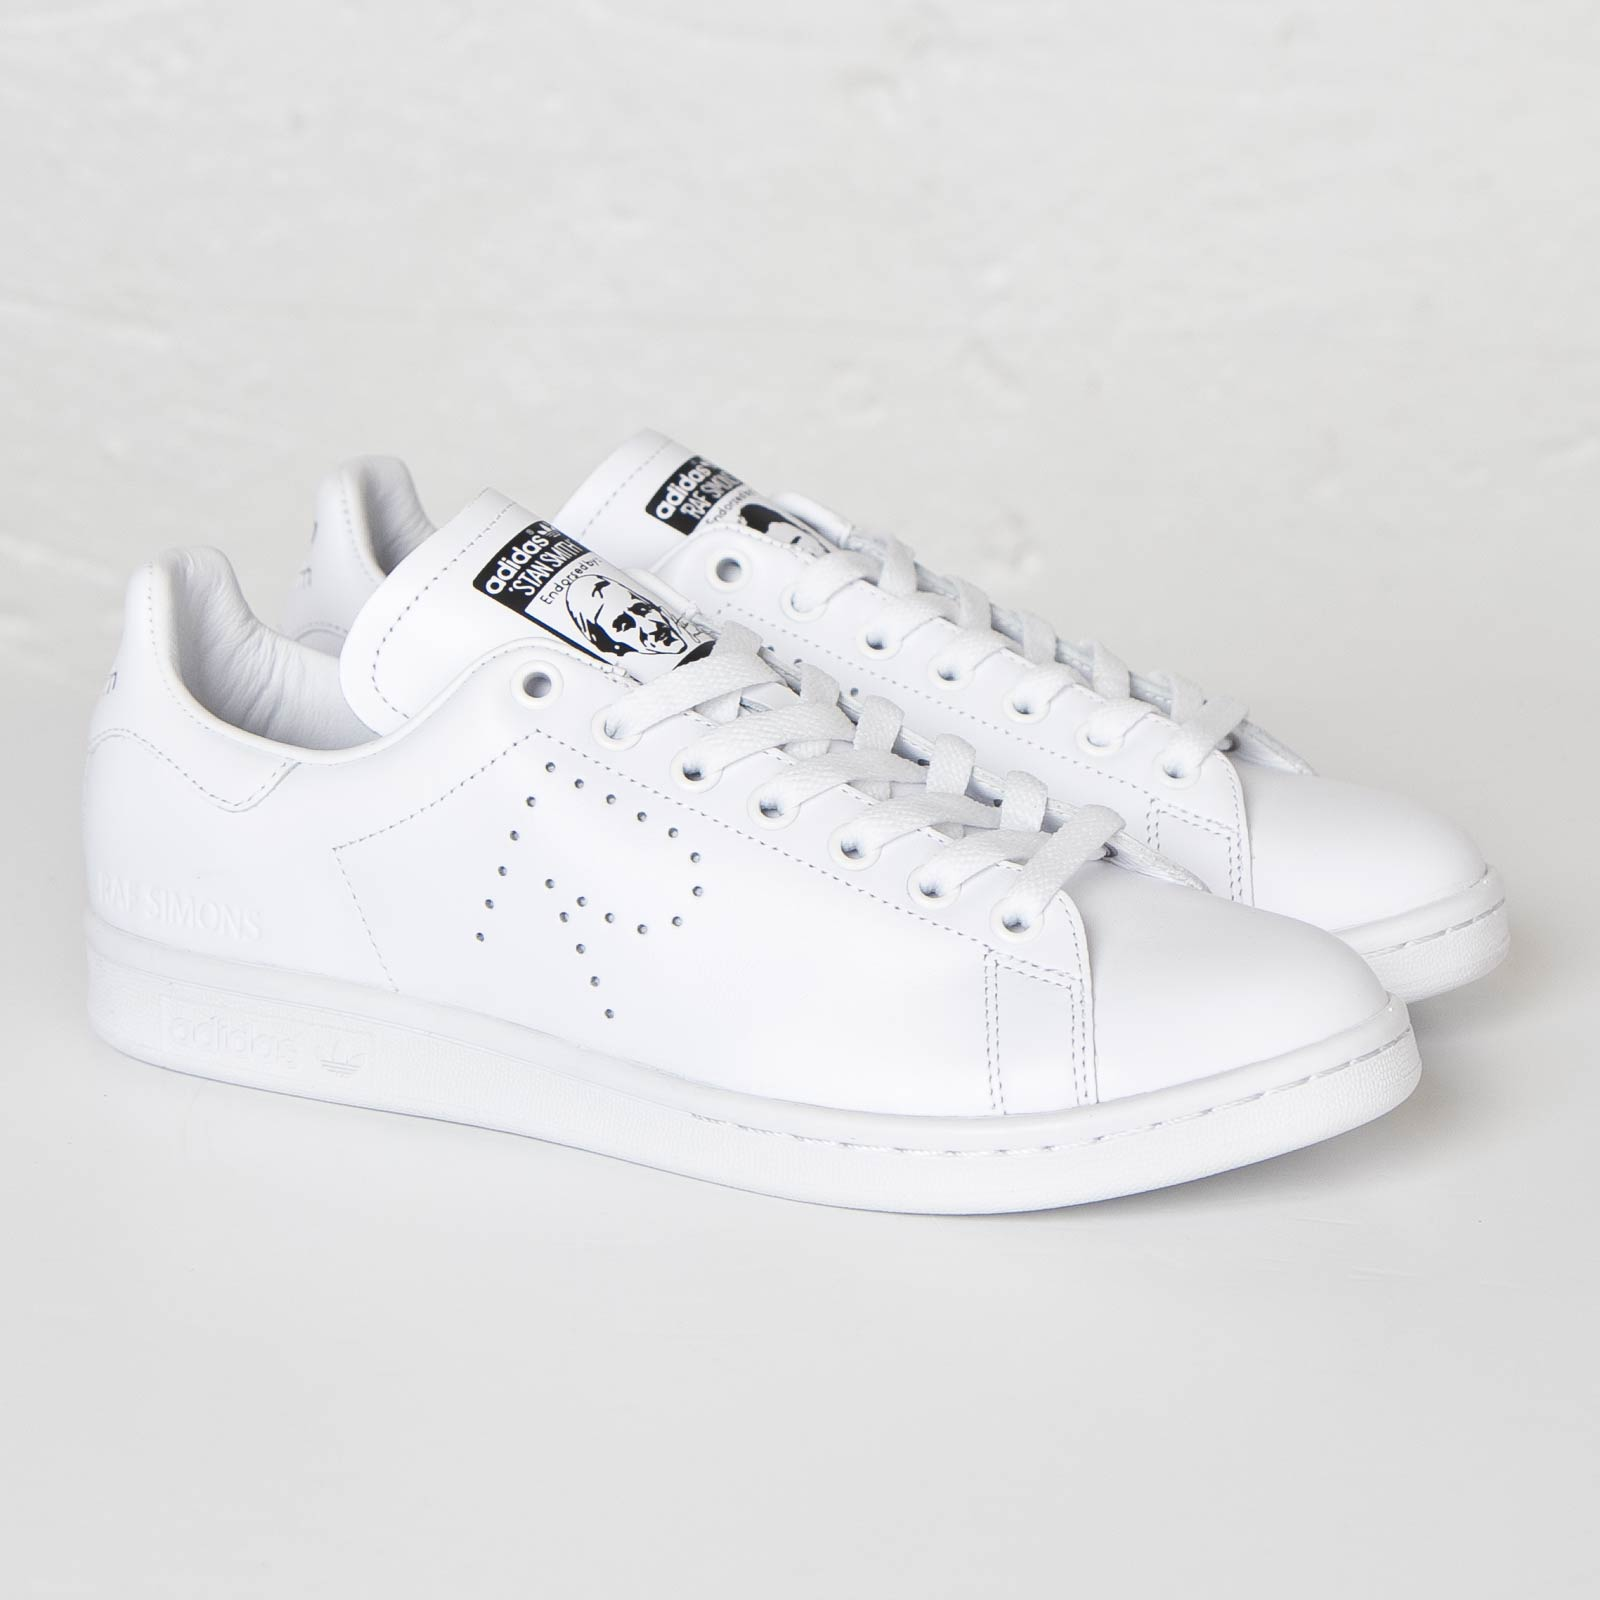 watch dcebf 77445 adidas Raf Simons Stan Smith - S74586 - Sneakersnstuff ...